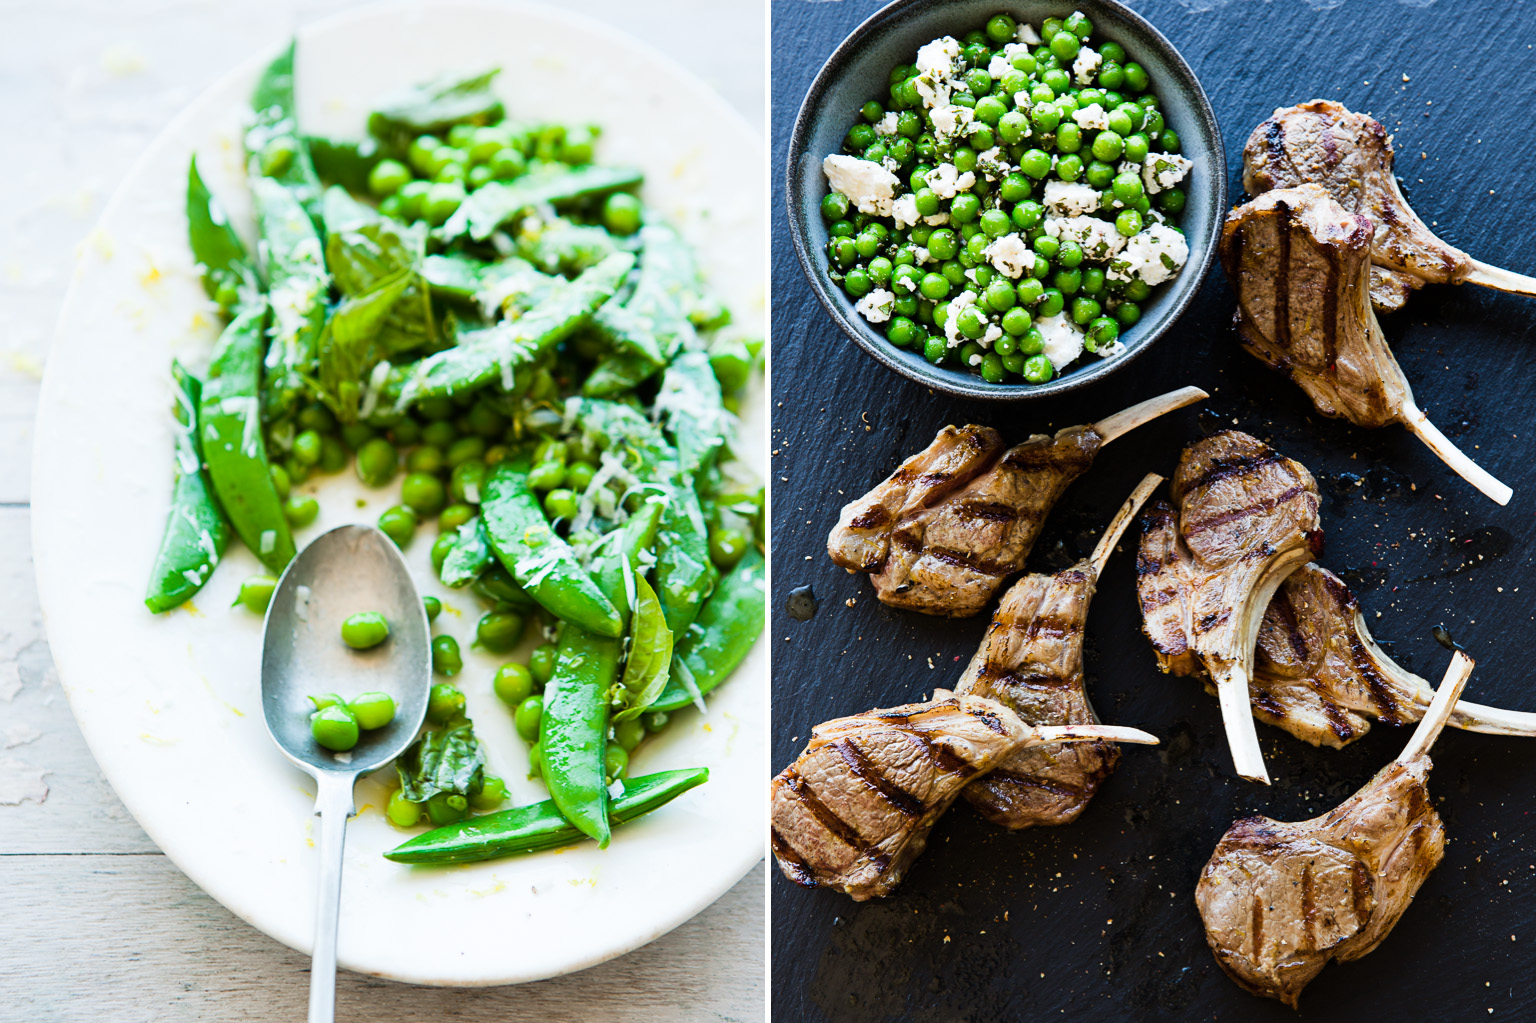 Spring peas and Lamb chops.